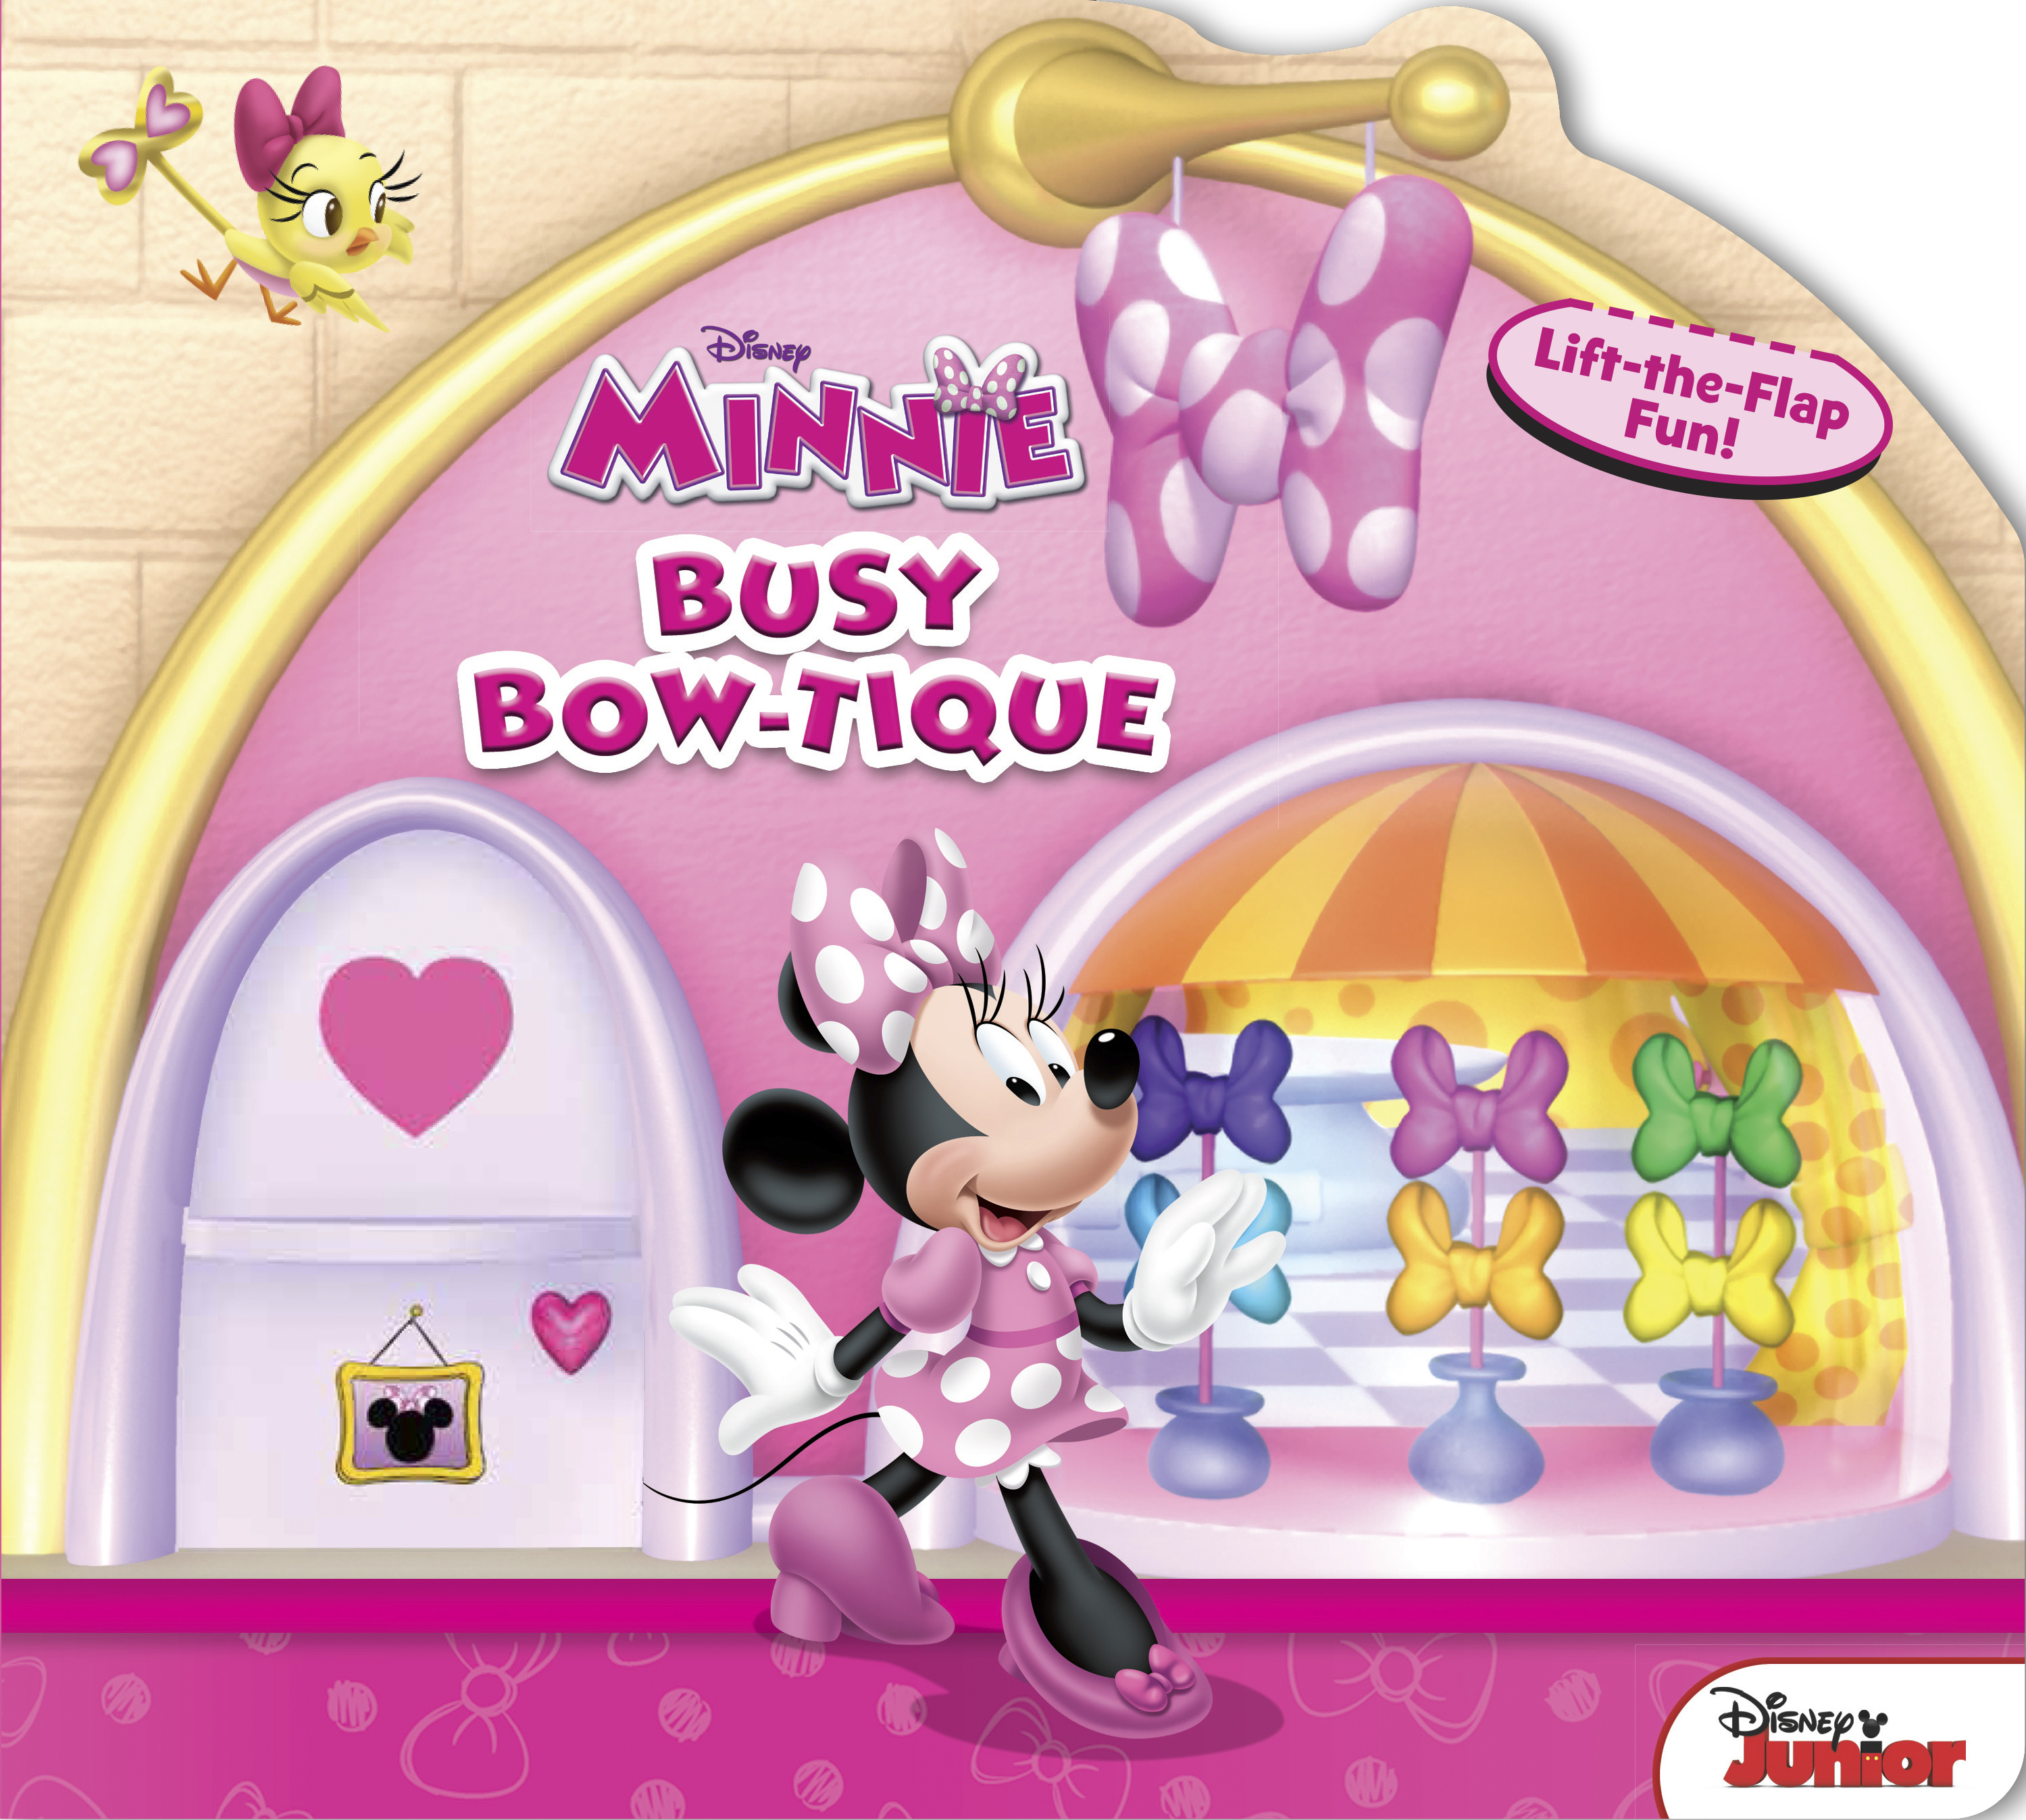 Minnie Busy Bow-tique